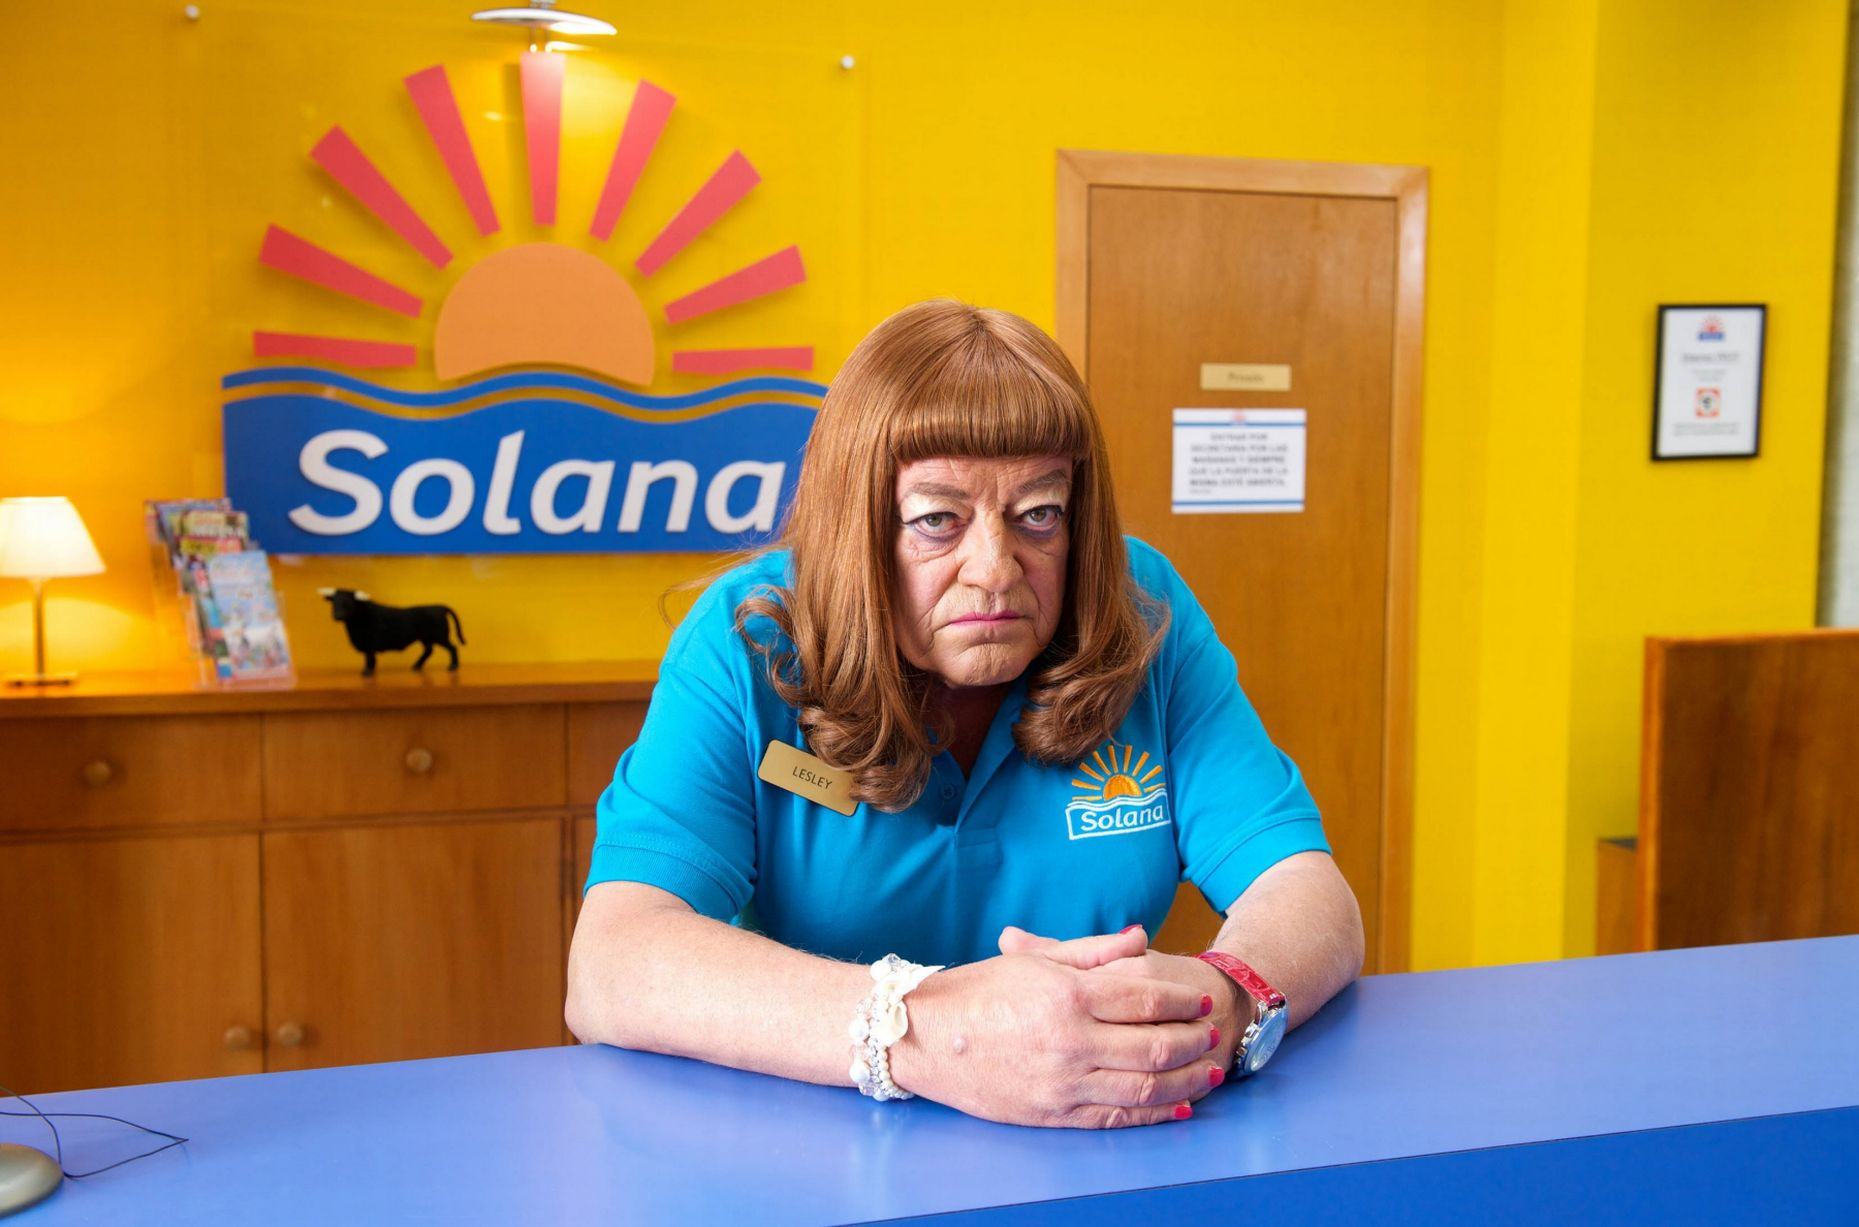 Benidorm star Tim Healy airlifted to UK hospital after 'fighting for his life' in Spain